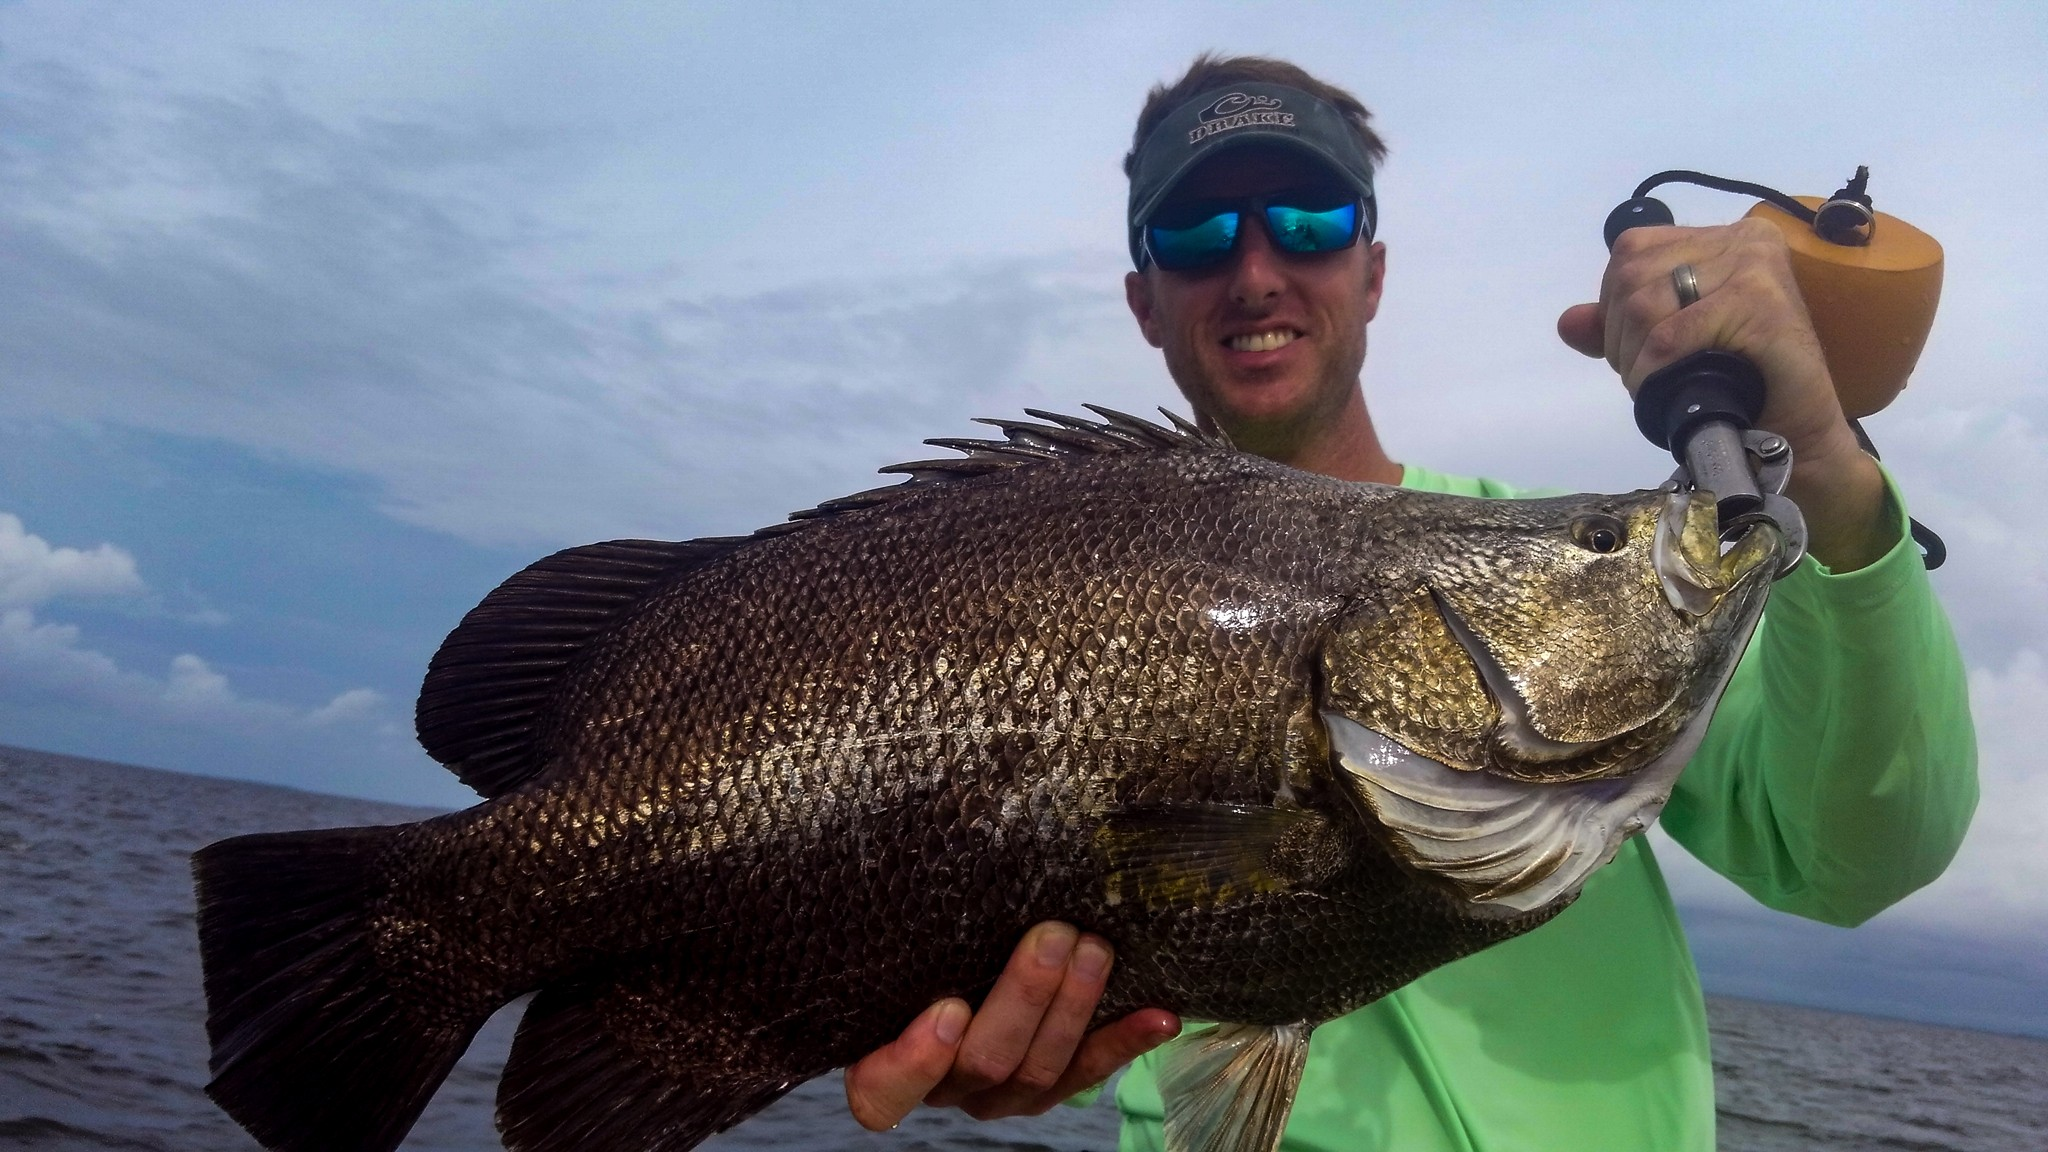 Tripletail Fishing with Southern Salinity Guide Service in Apalachicola.